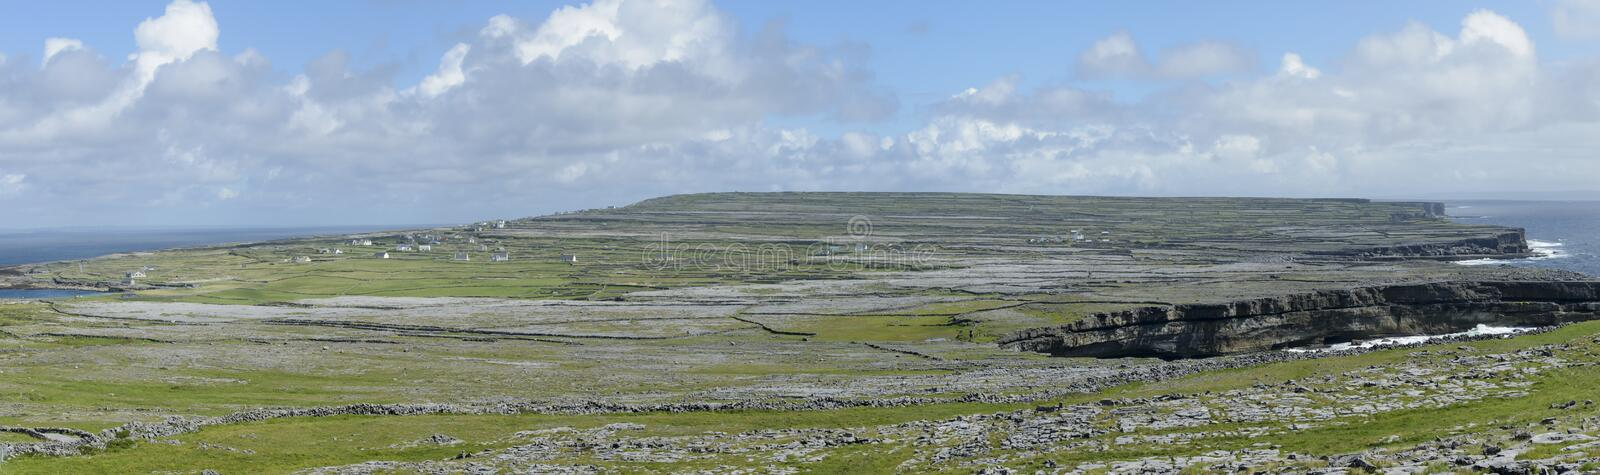 Inishmore panorama, Aran Islands, Ireland, Europe stock photo